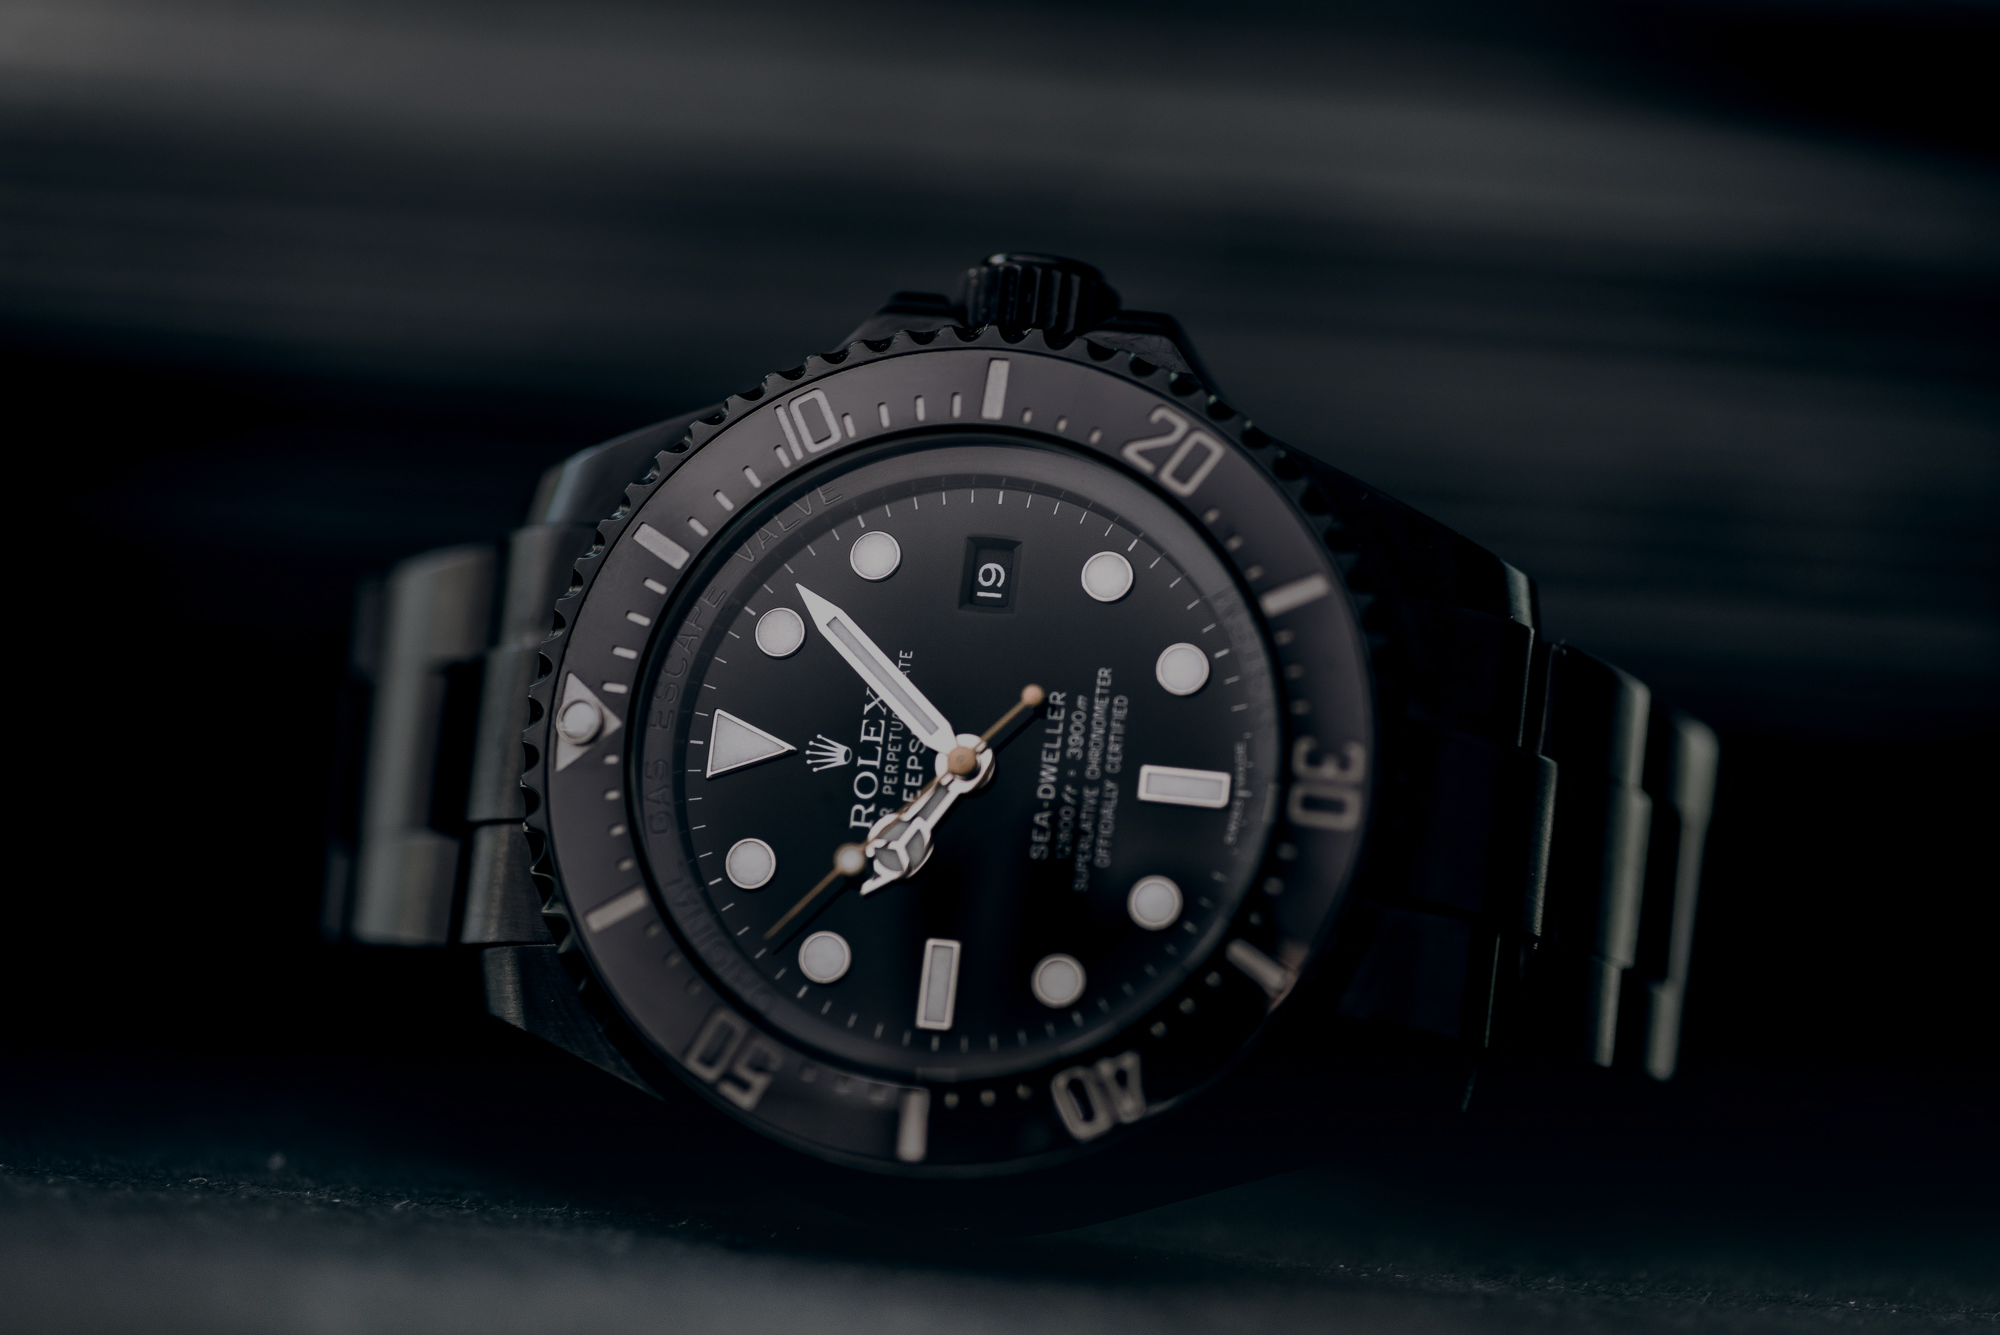 The Watch of the Day – The Rolex Deepsea Sea-Dweller DLC